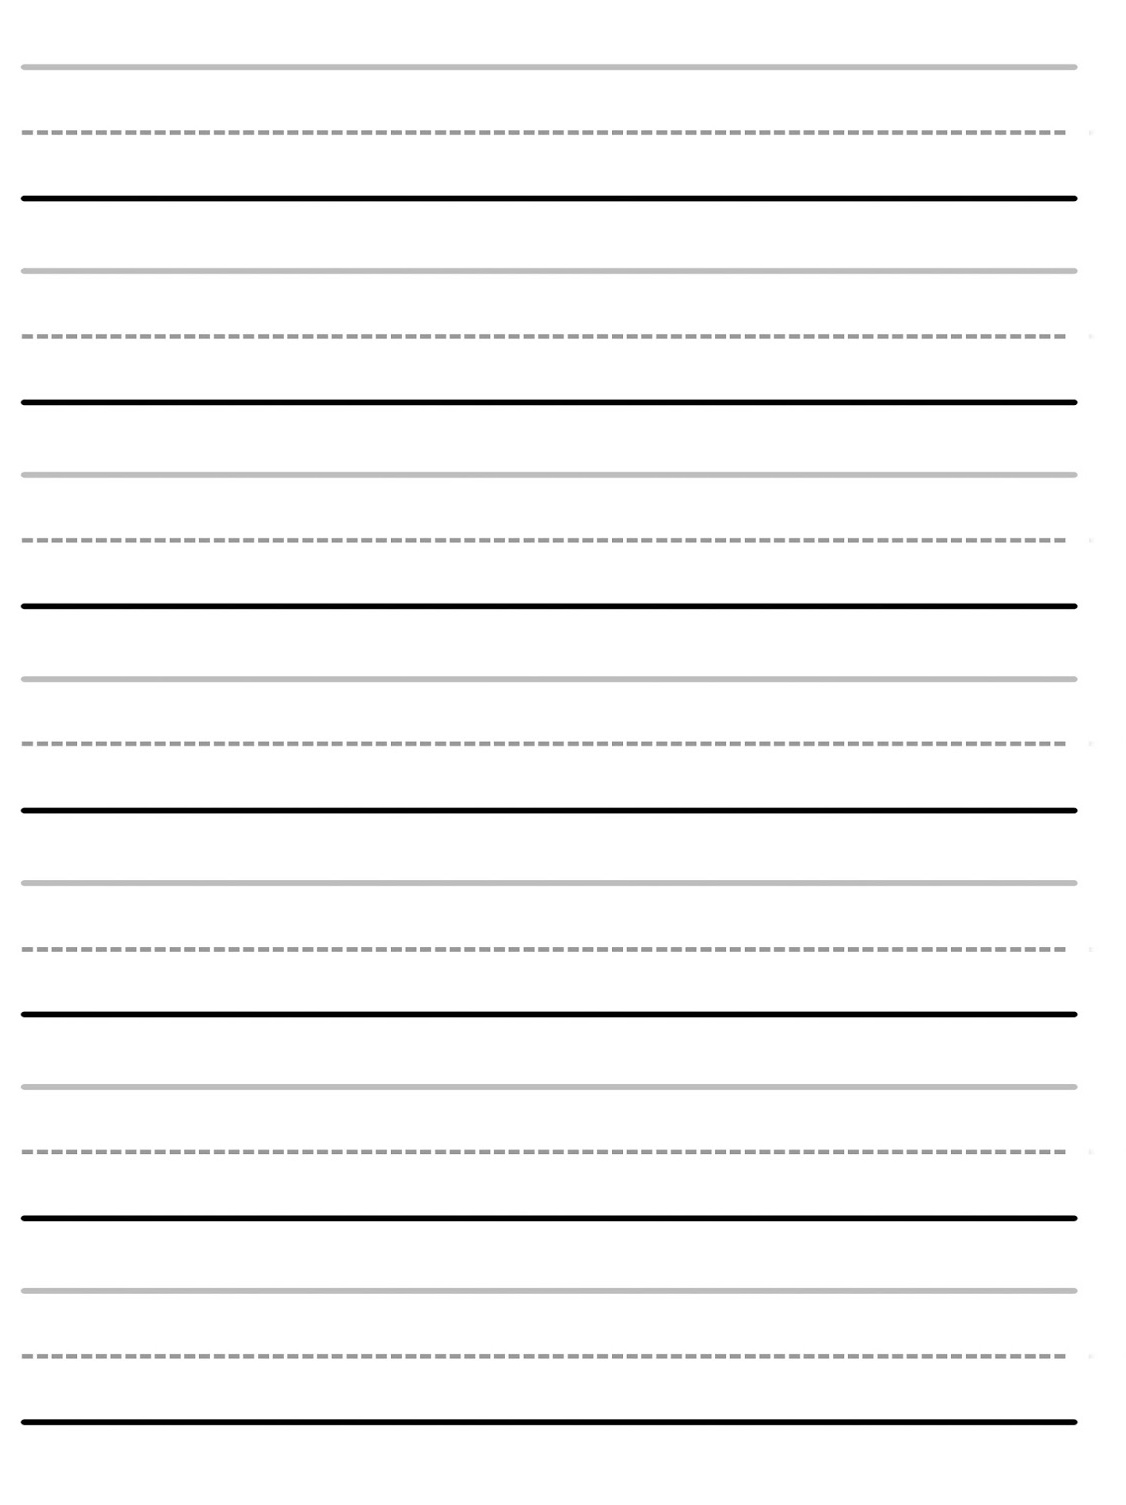 basic blank handwriting worksheets